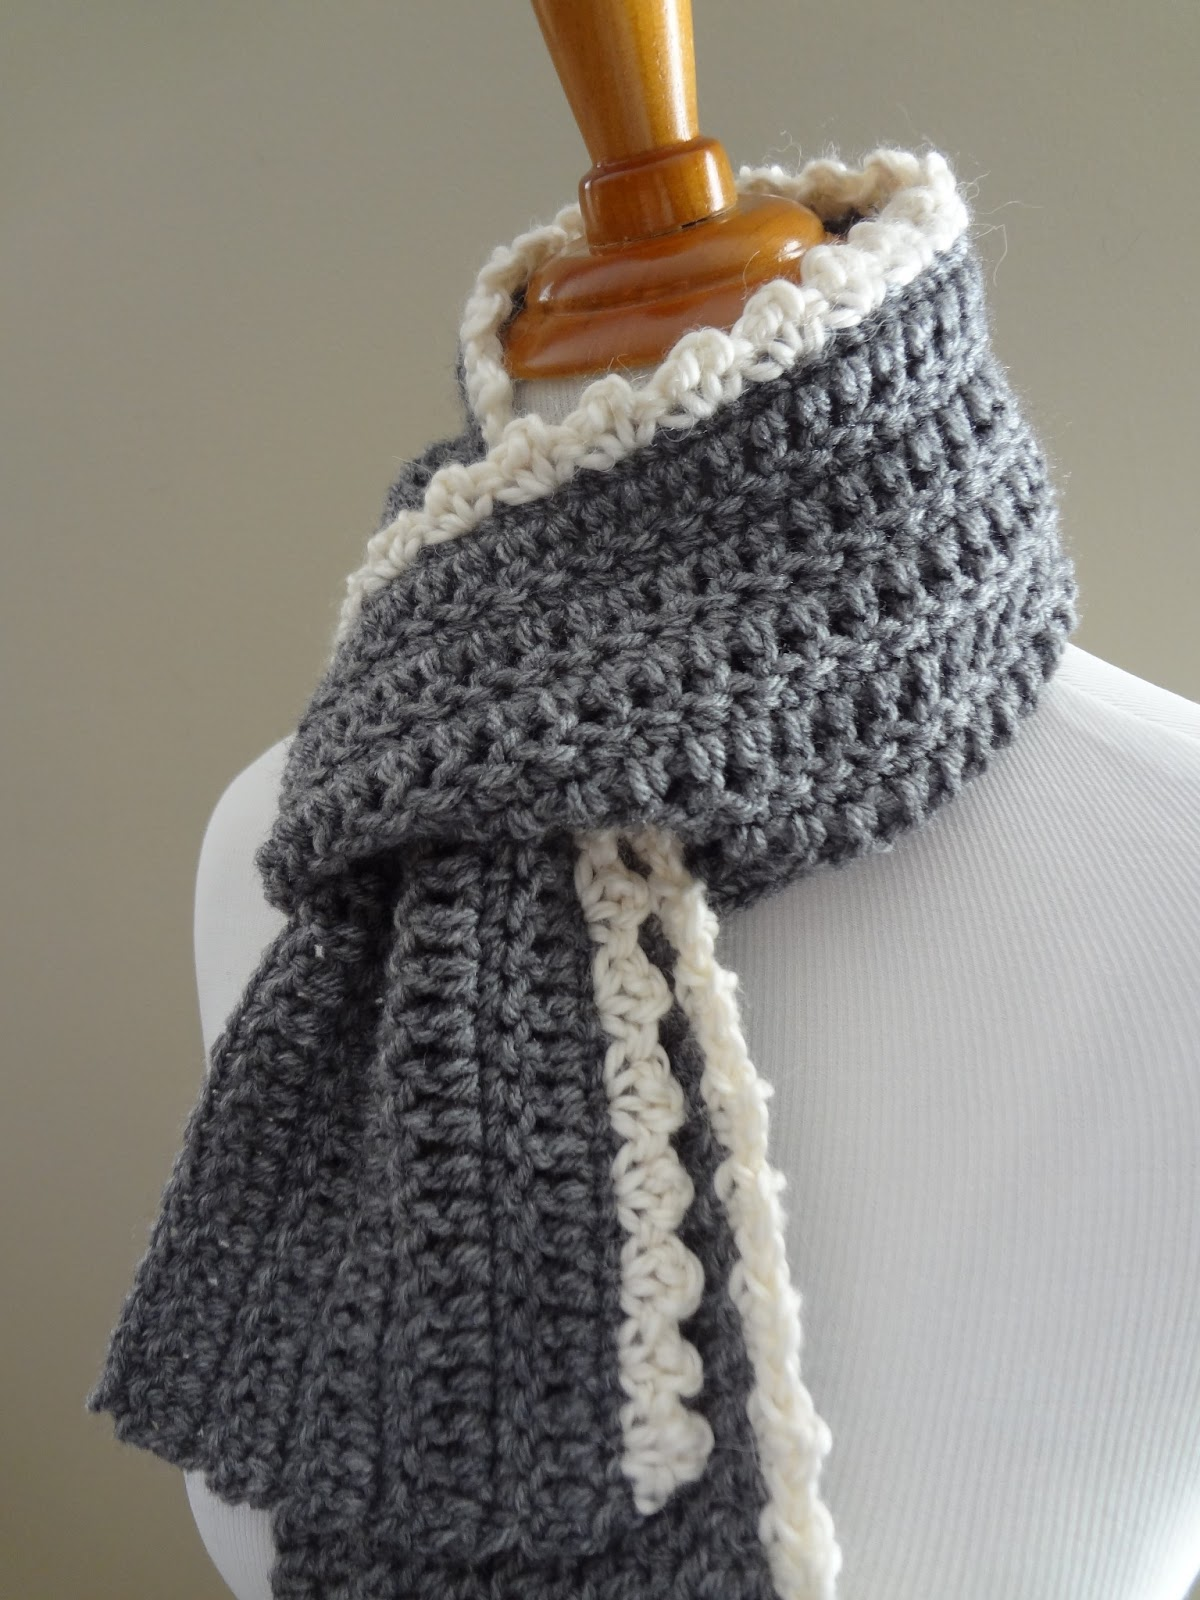 Free Crochet Patterns For Dressy Scarves : Fiber Flux: Free Crochet Pattern...Ingrid Scarf